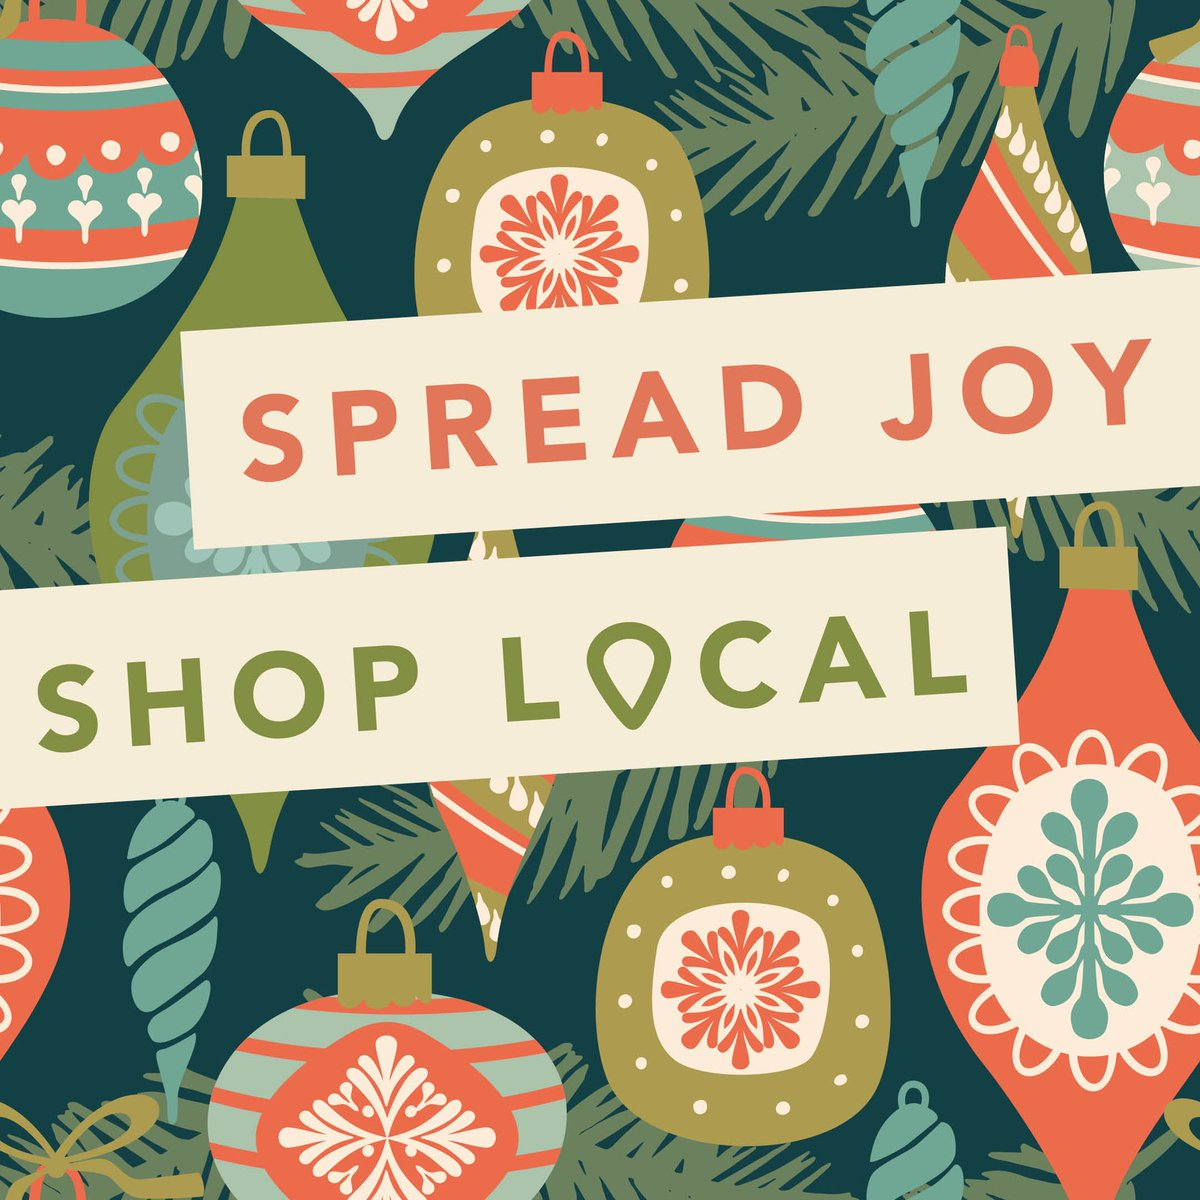 To spread the shop small love, tag a small business you're shopping today! #shopsmall #SmallBusinessSaturday   Thank you for shopping local and small this holiday season ❤️